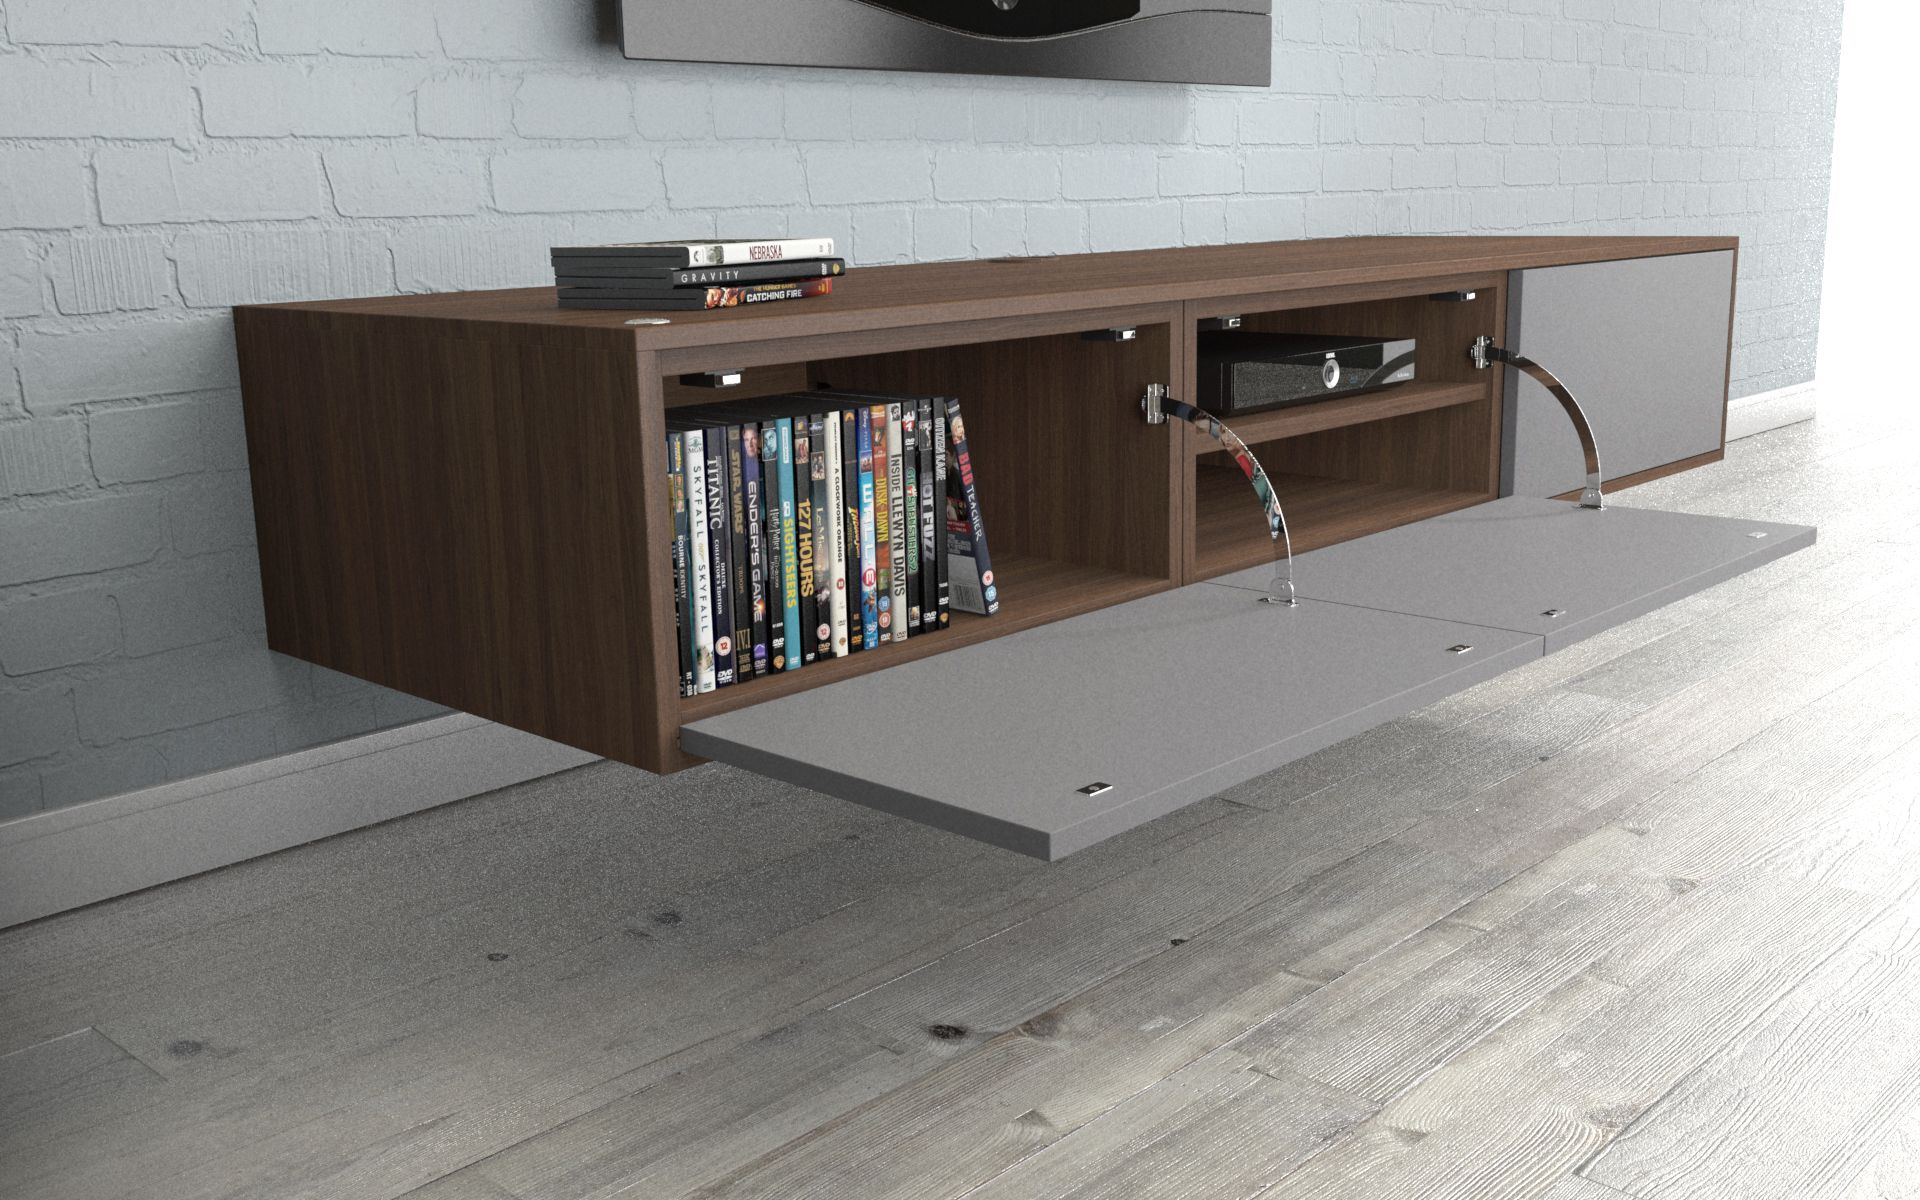 Wood Veneer TV Unit With Drop Down Storage For DVDs And AV Equipment. Made  By